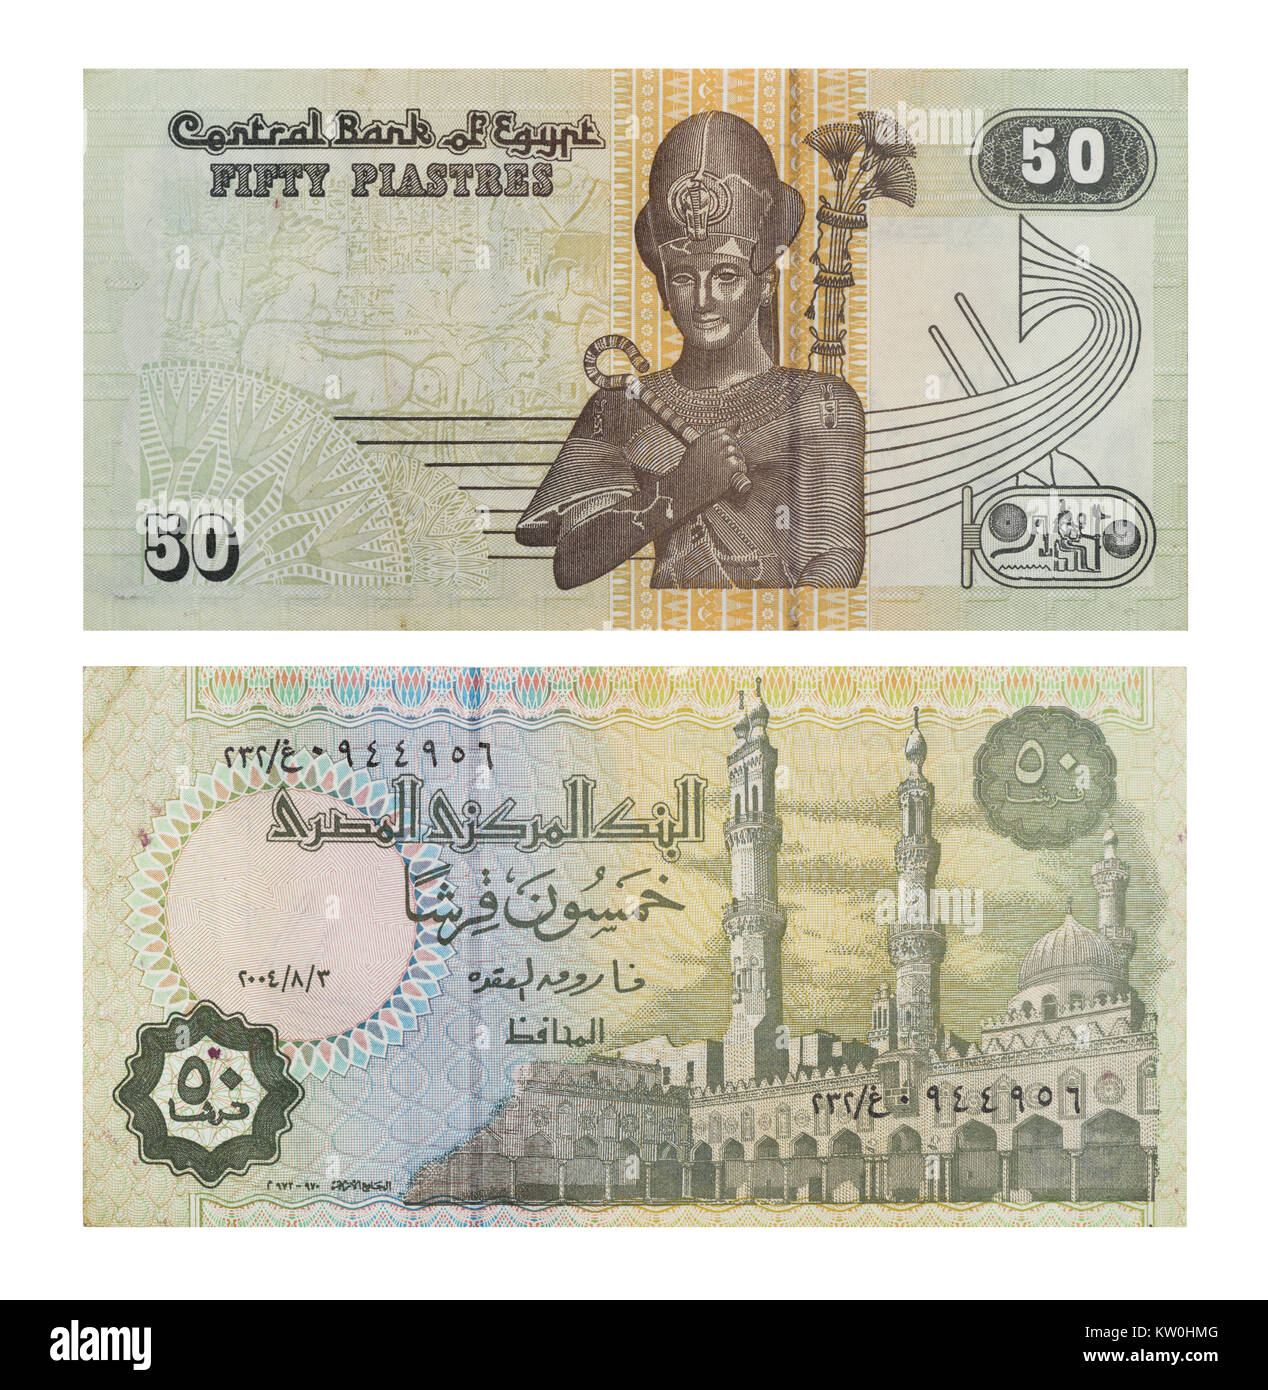 Banknote of egypt stock photos banknote of egypt stock images 50 piastres egypt two side stock image biocorpaavc Images